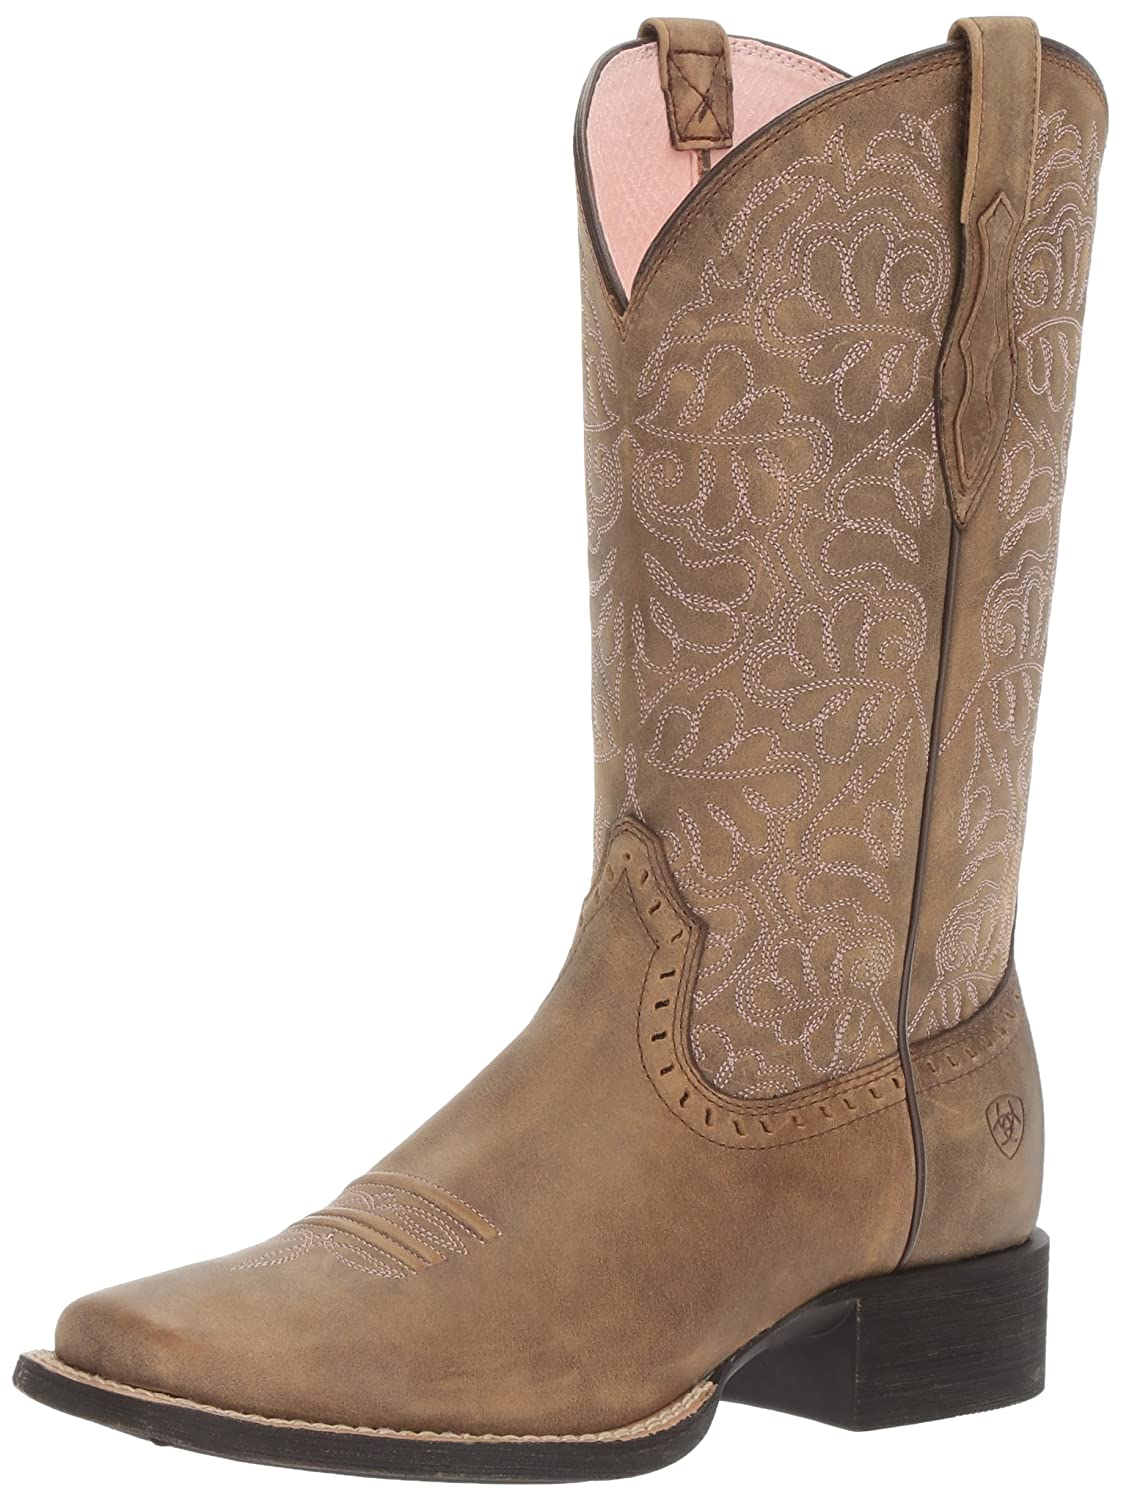 Ariat Women's Round up Remuda Western Cowboy Boot B01L91M312 6.5 B(M) US|Brown Bomber